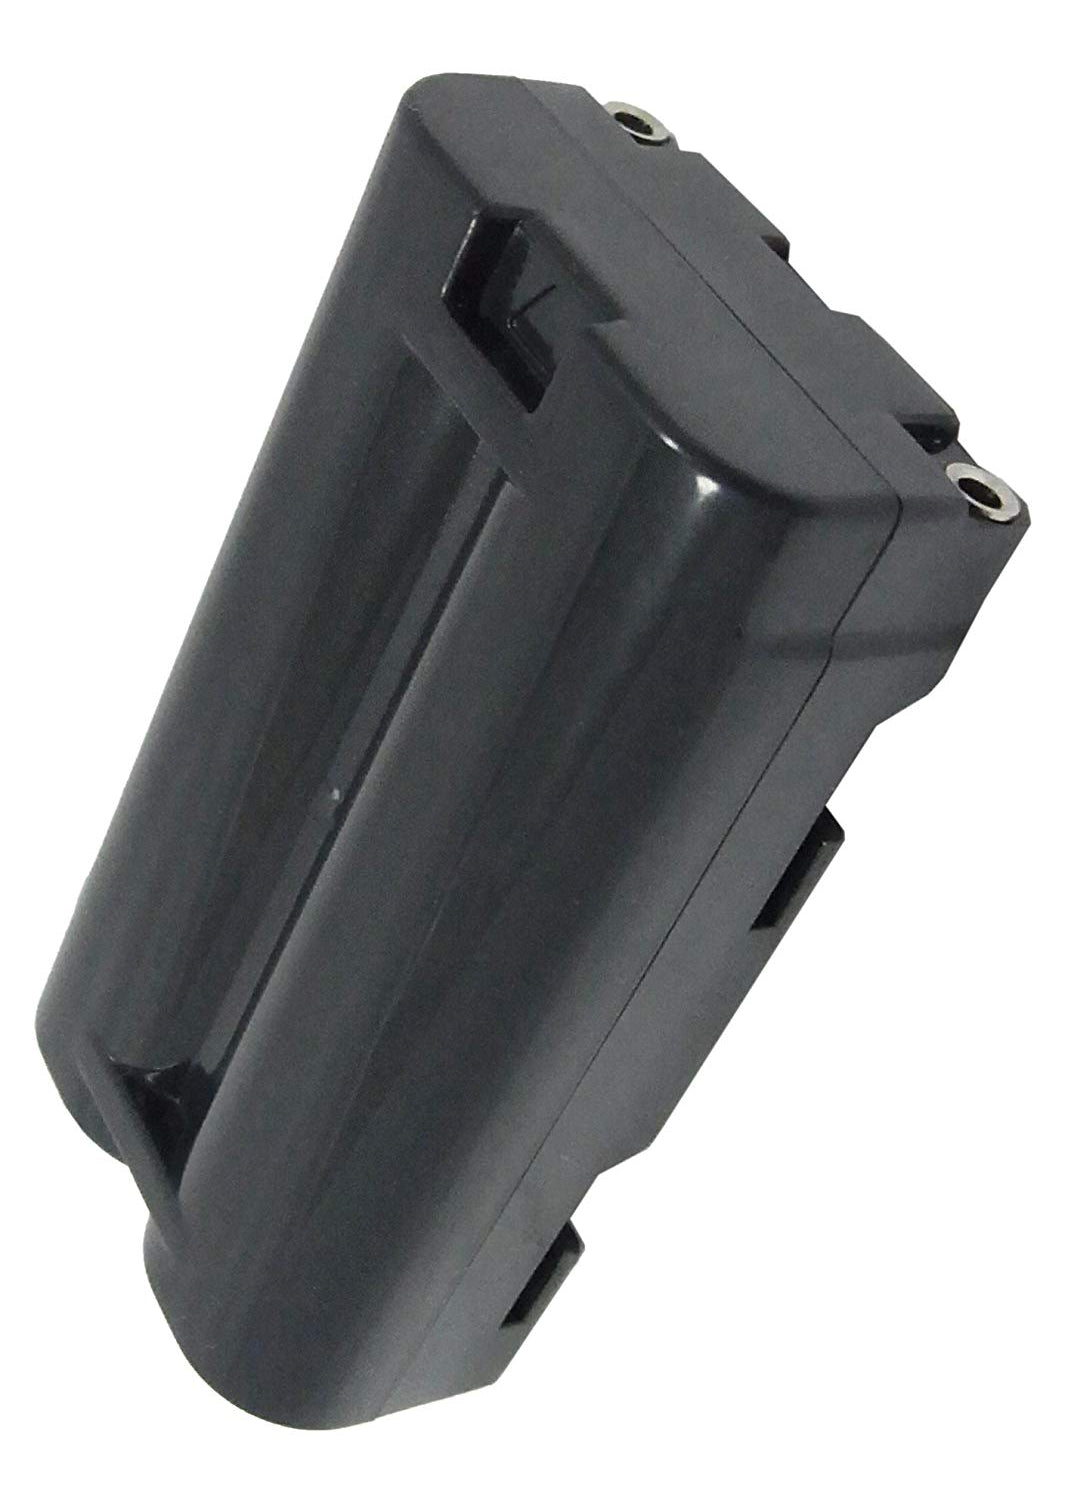 Intermec/Norand T2420, T2425, T2435 Battery